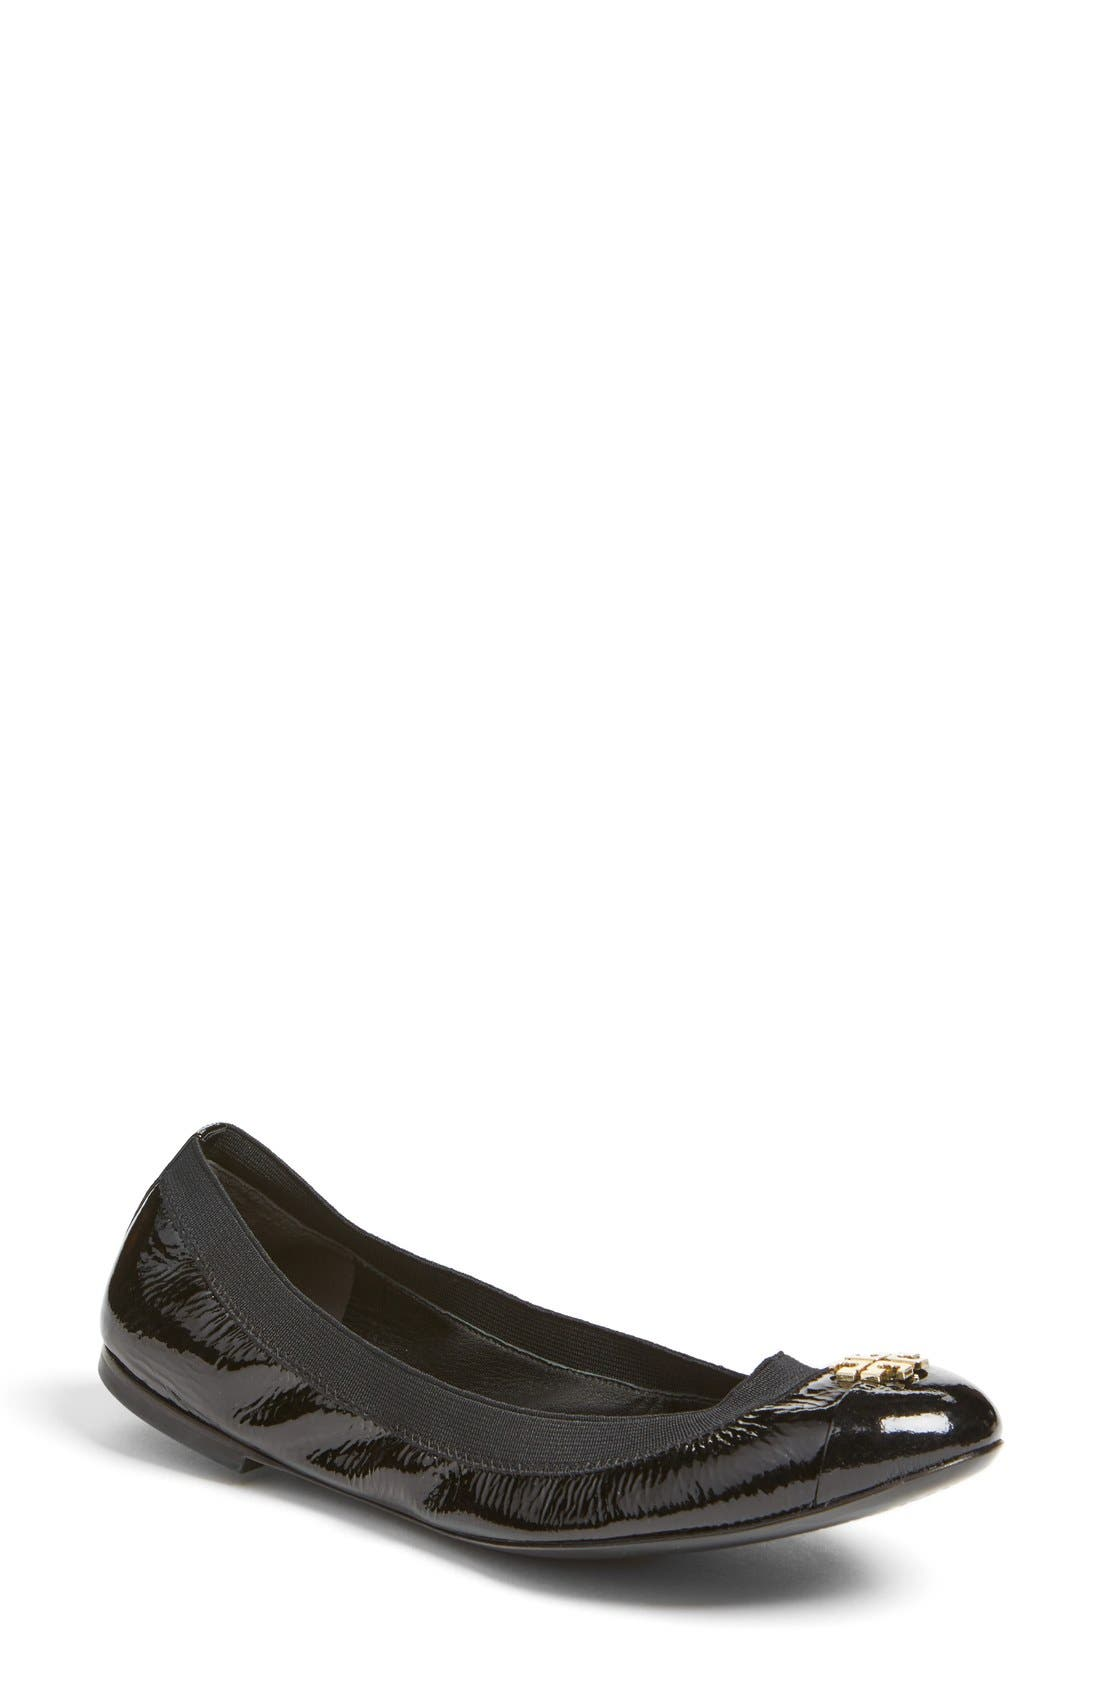 Alternate Image 1 Selected - Tory Burch 'Jolie' Ballet Flat (Women)